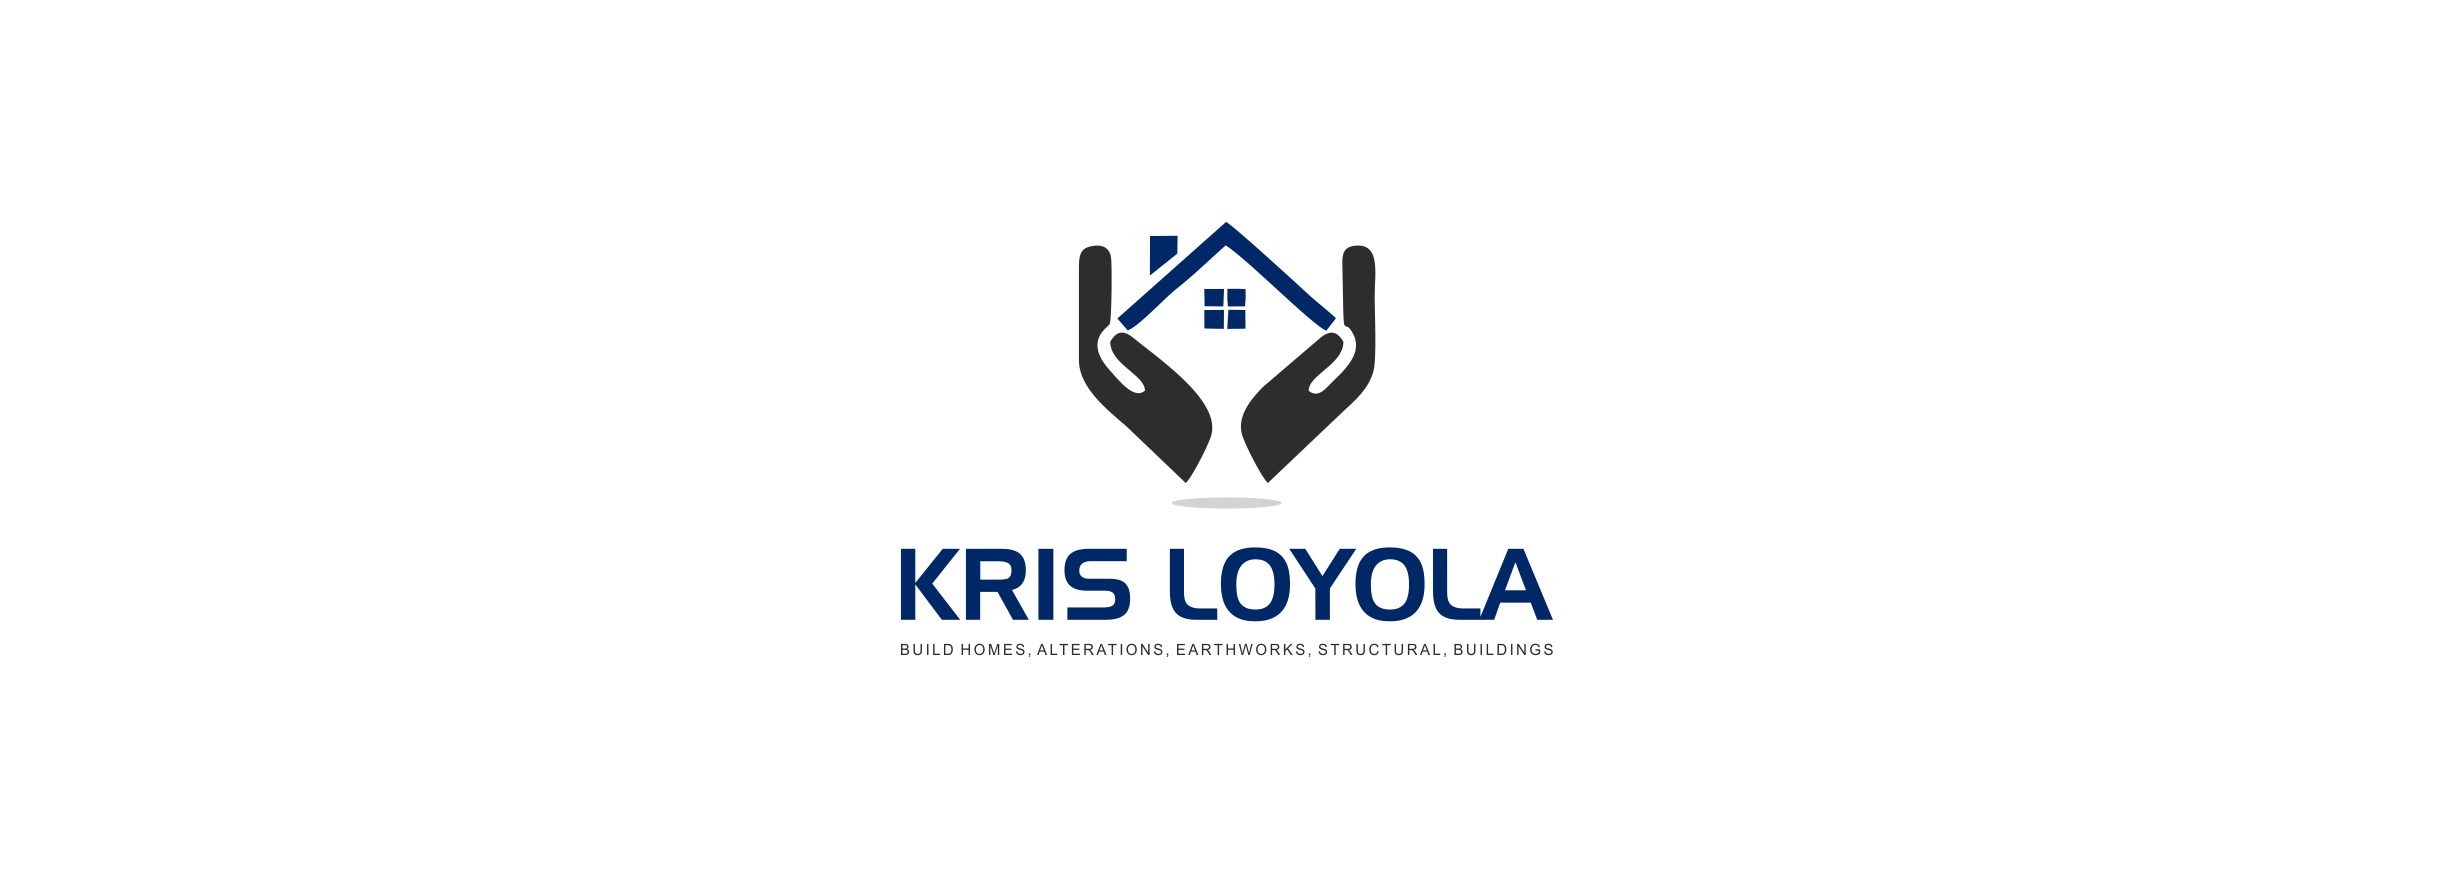 Logo Design by Muhammad Aslam - Entry No. 6 in the Logo Design Contest Kris Loyola Logo Design.